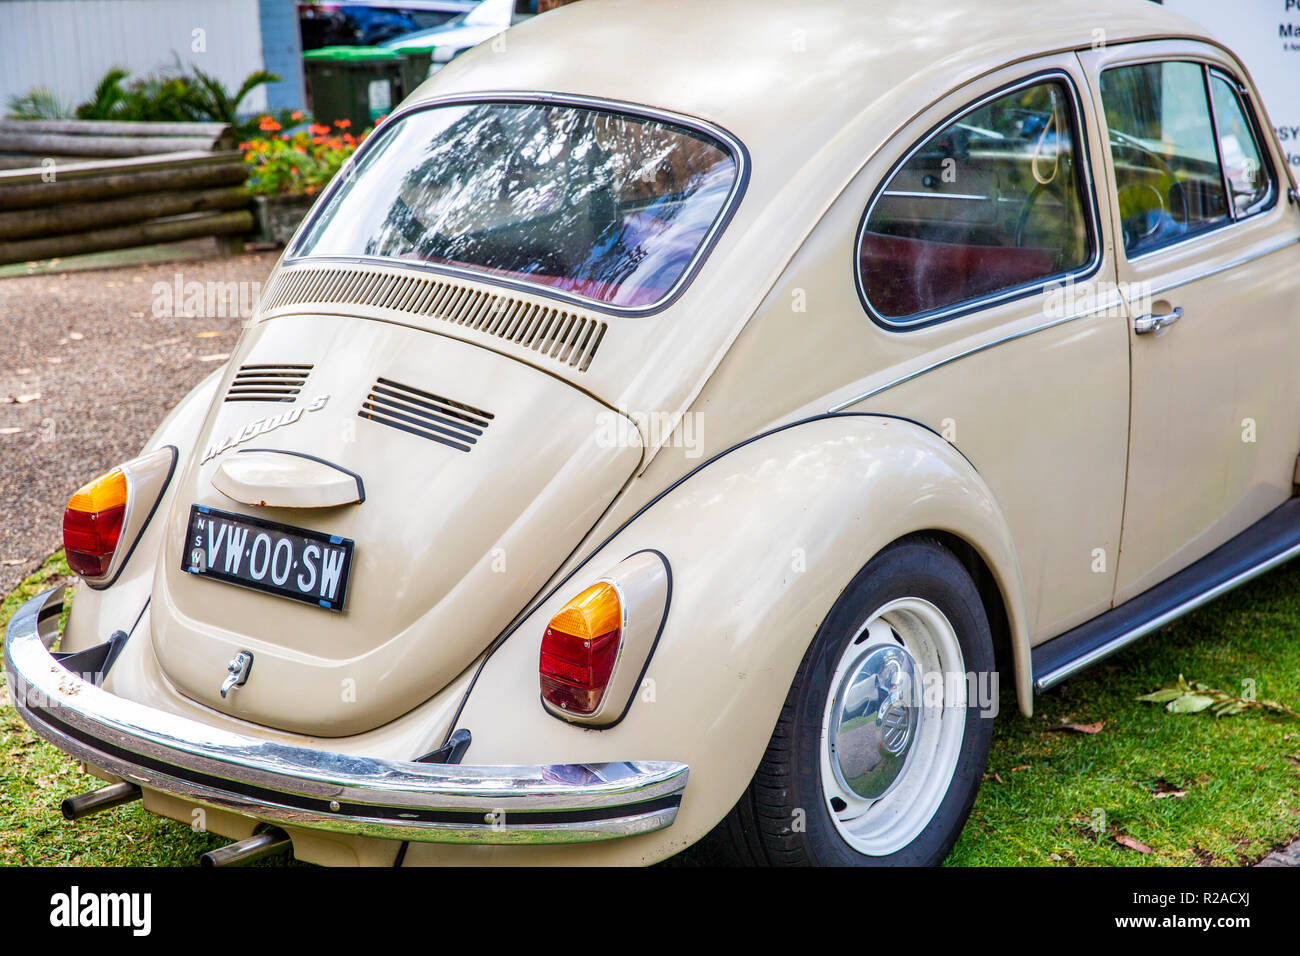 Vw Beetle Boot High Resolution Stock Photography And Images Alamy